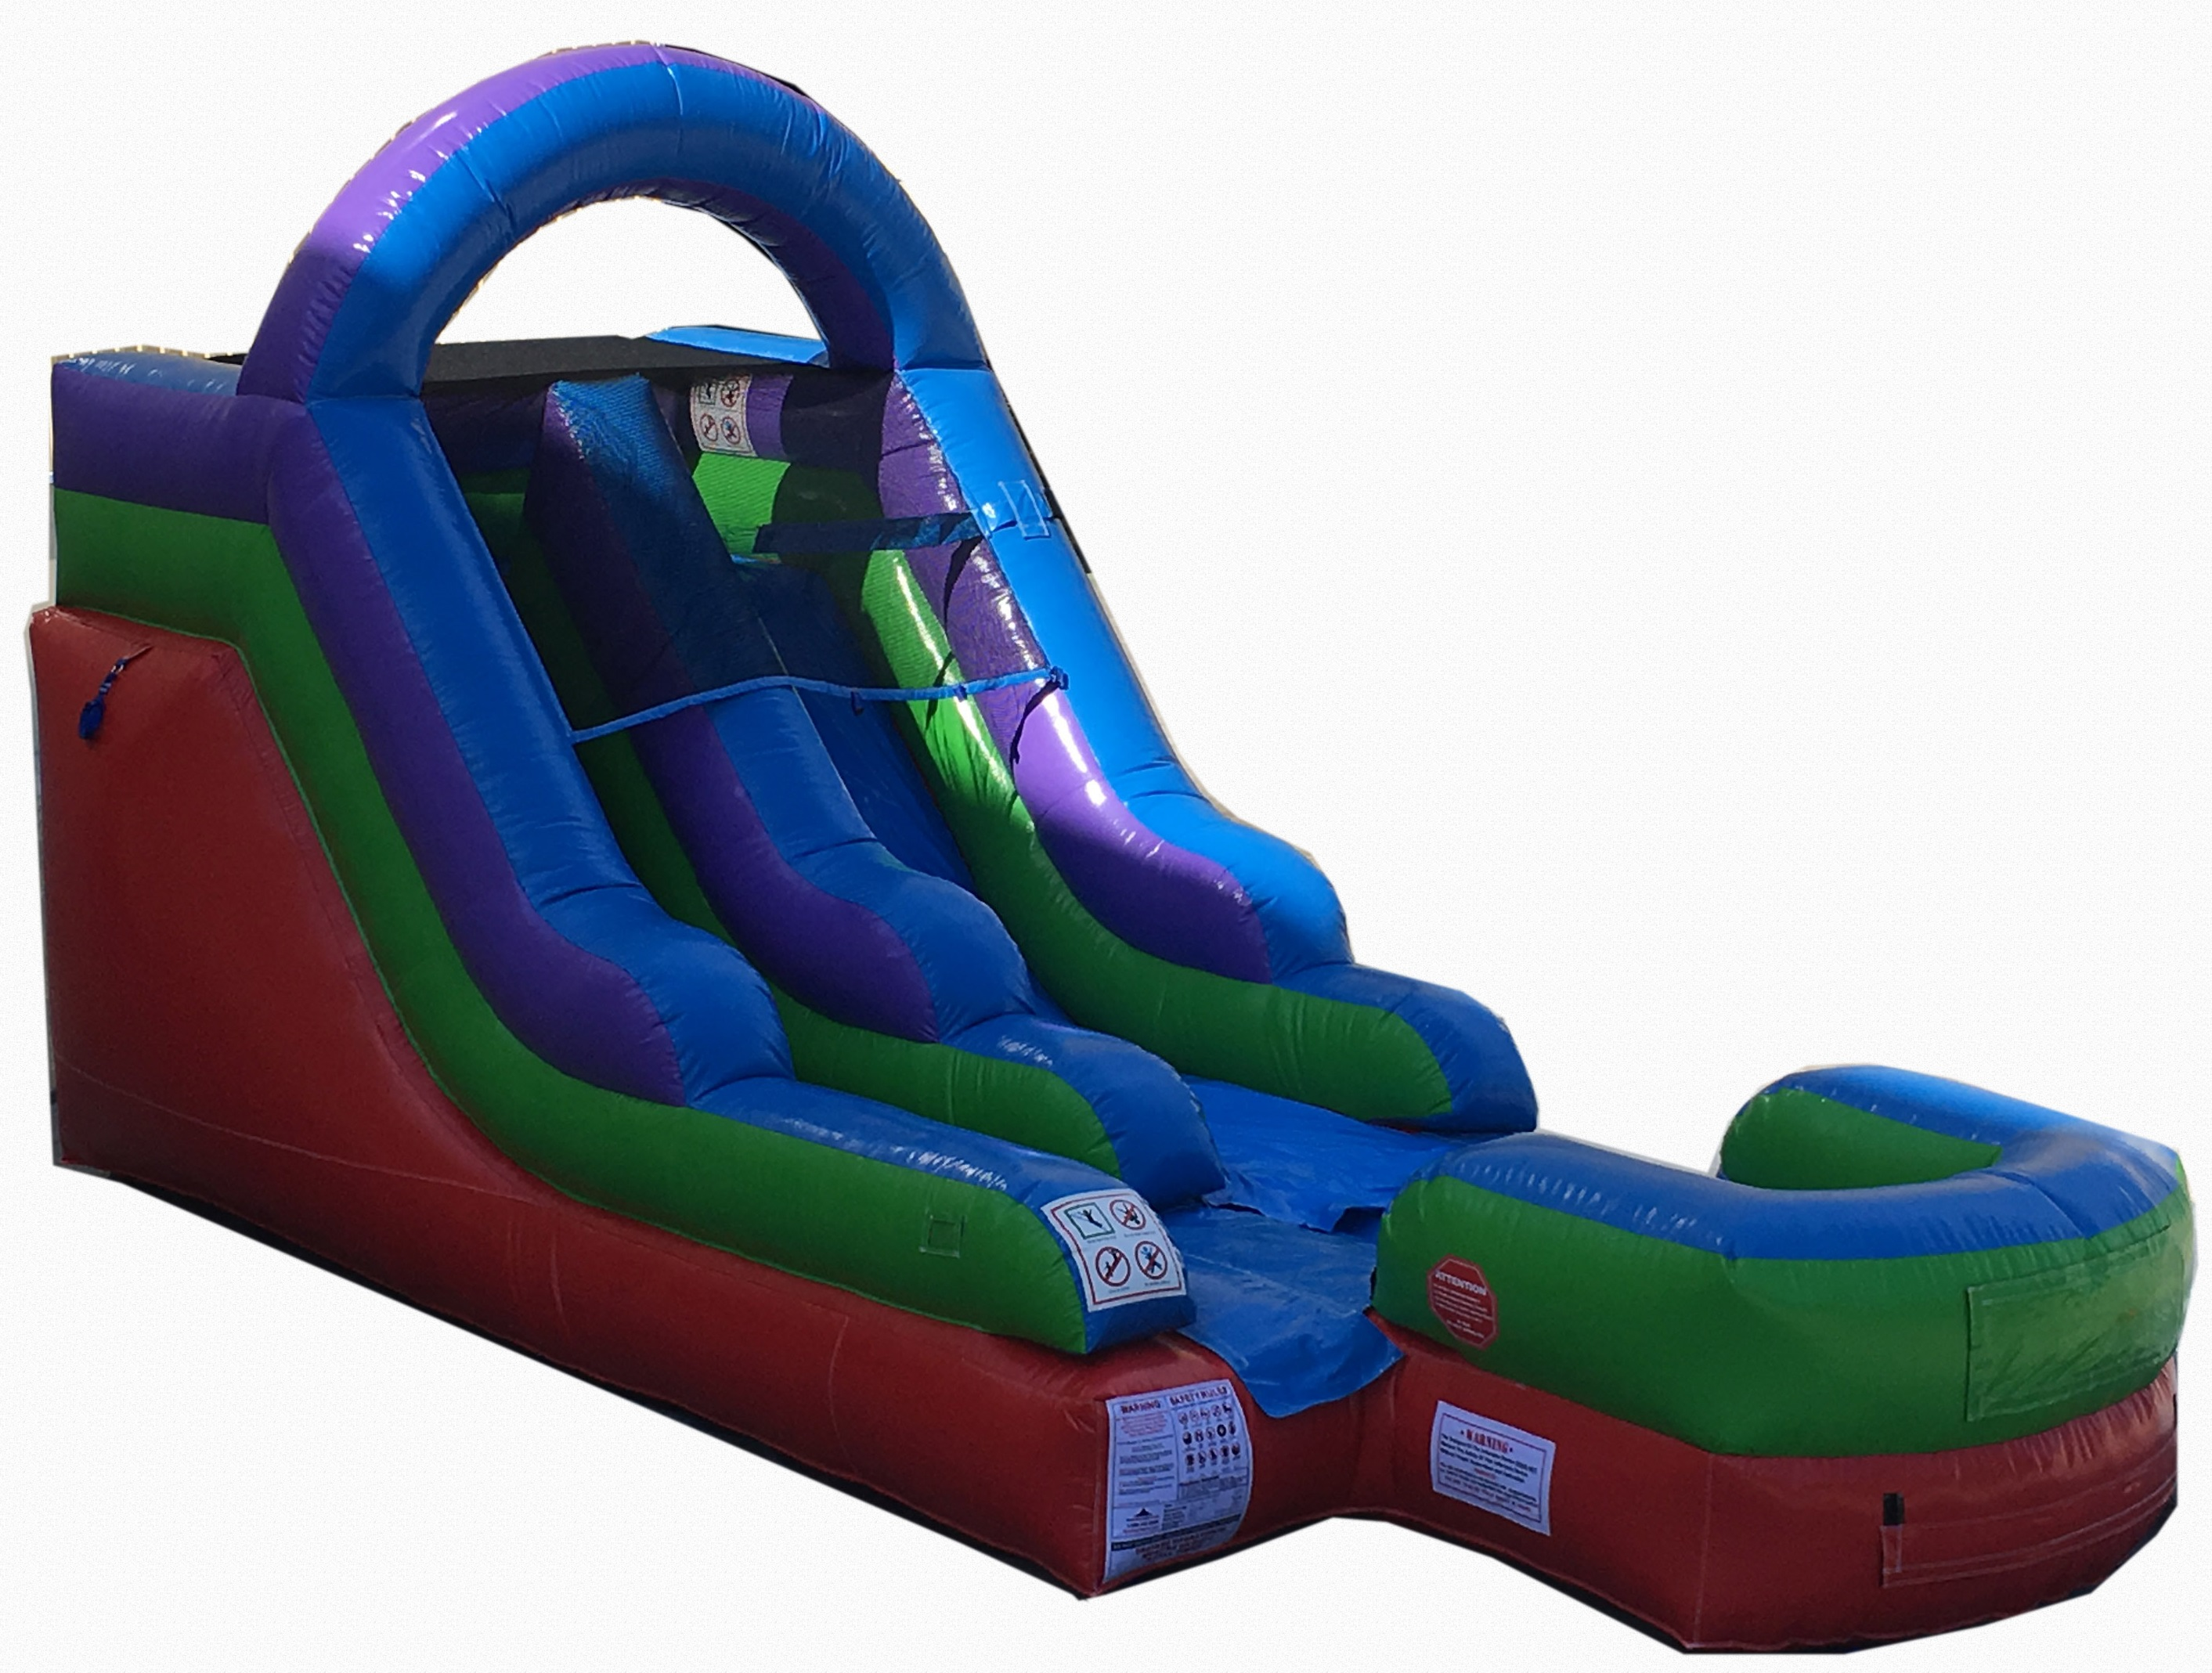 Pogo 12' Retro Commercial Inflatable Waterslide with Blower Kids Bouncy Jumper by Pogo Bounce House